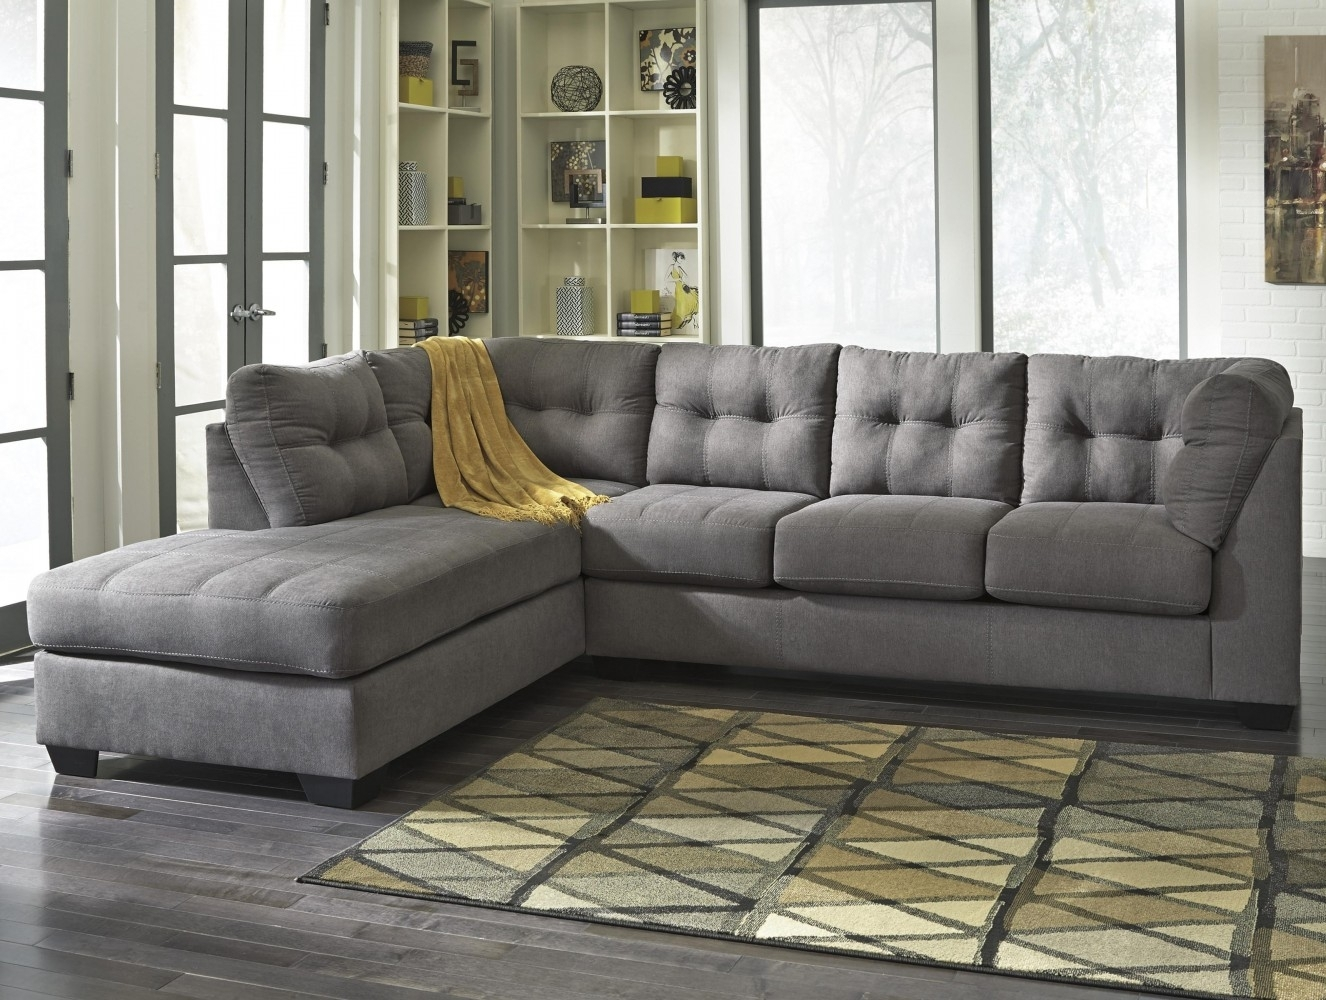 2 Piece Sectional Sofa Canada | Baci Living Room Within Josephine 2 Piece Sectionals With Laf Sofa (View 6 of 25)